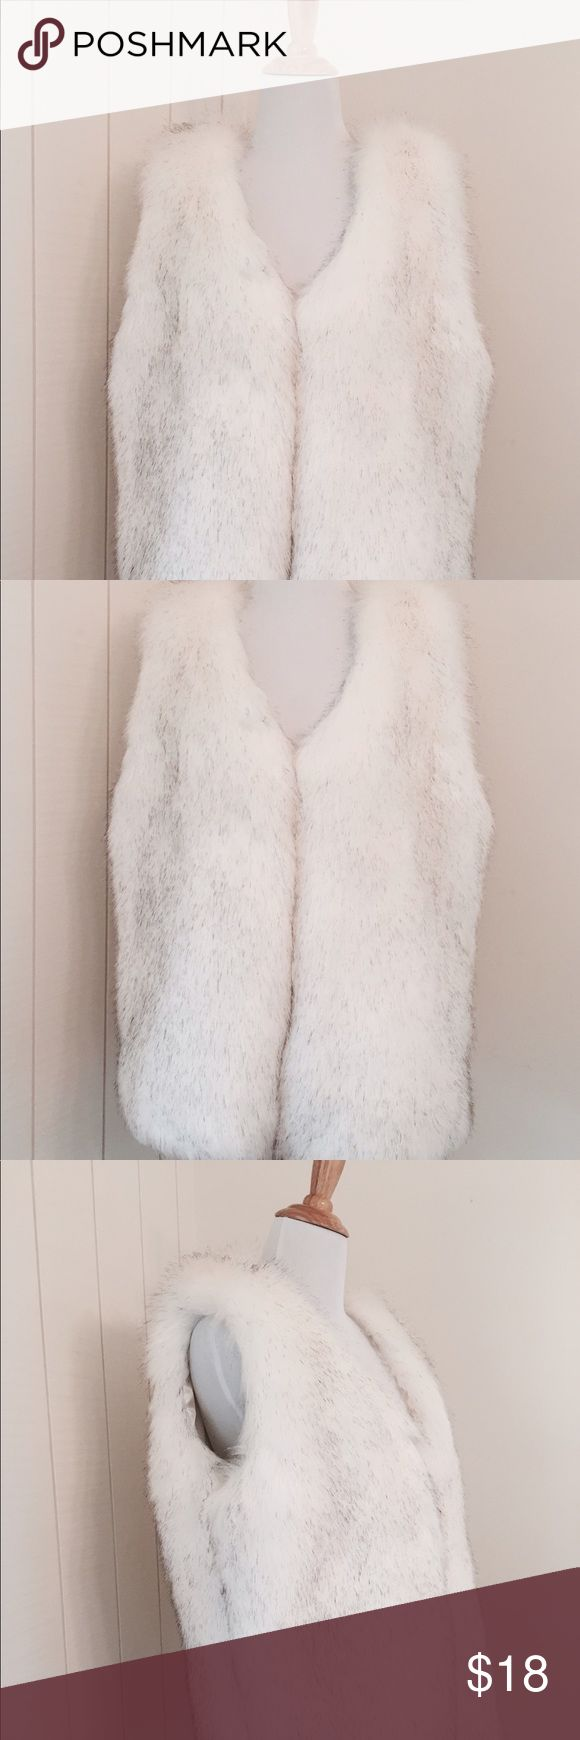 GLAMOROUS white faux fur vest This faux fur vest feels like the real thing(!).  * Beautiful and soft white fur with tips of black.  * Pristine white satin lining.  * Just in time for Spring/Summer nights * Excellent condition Jackets & Coats Vests